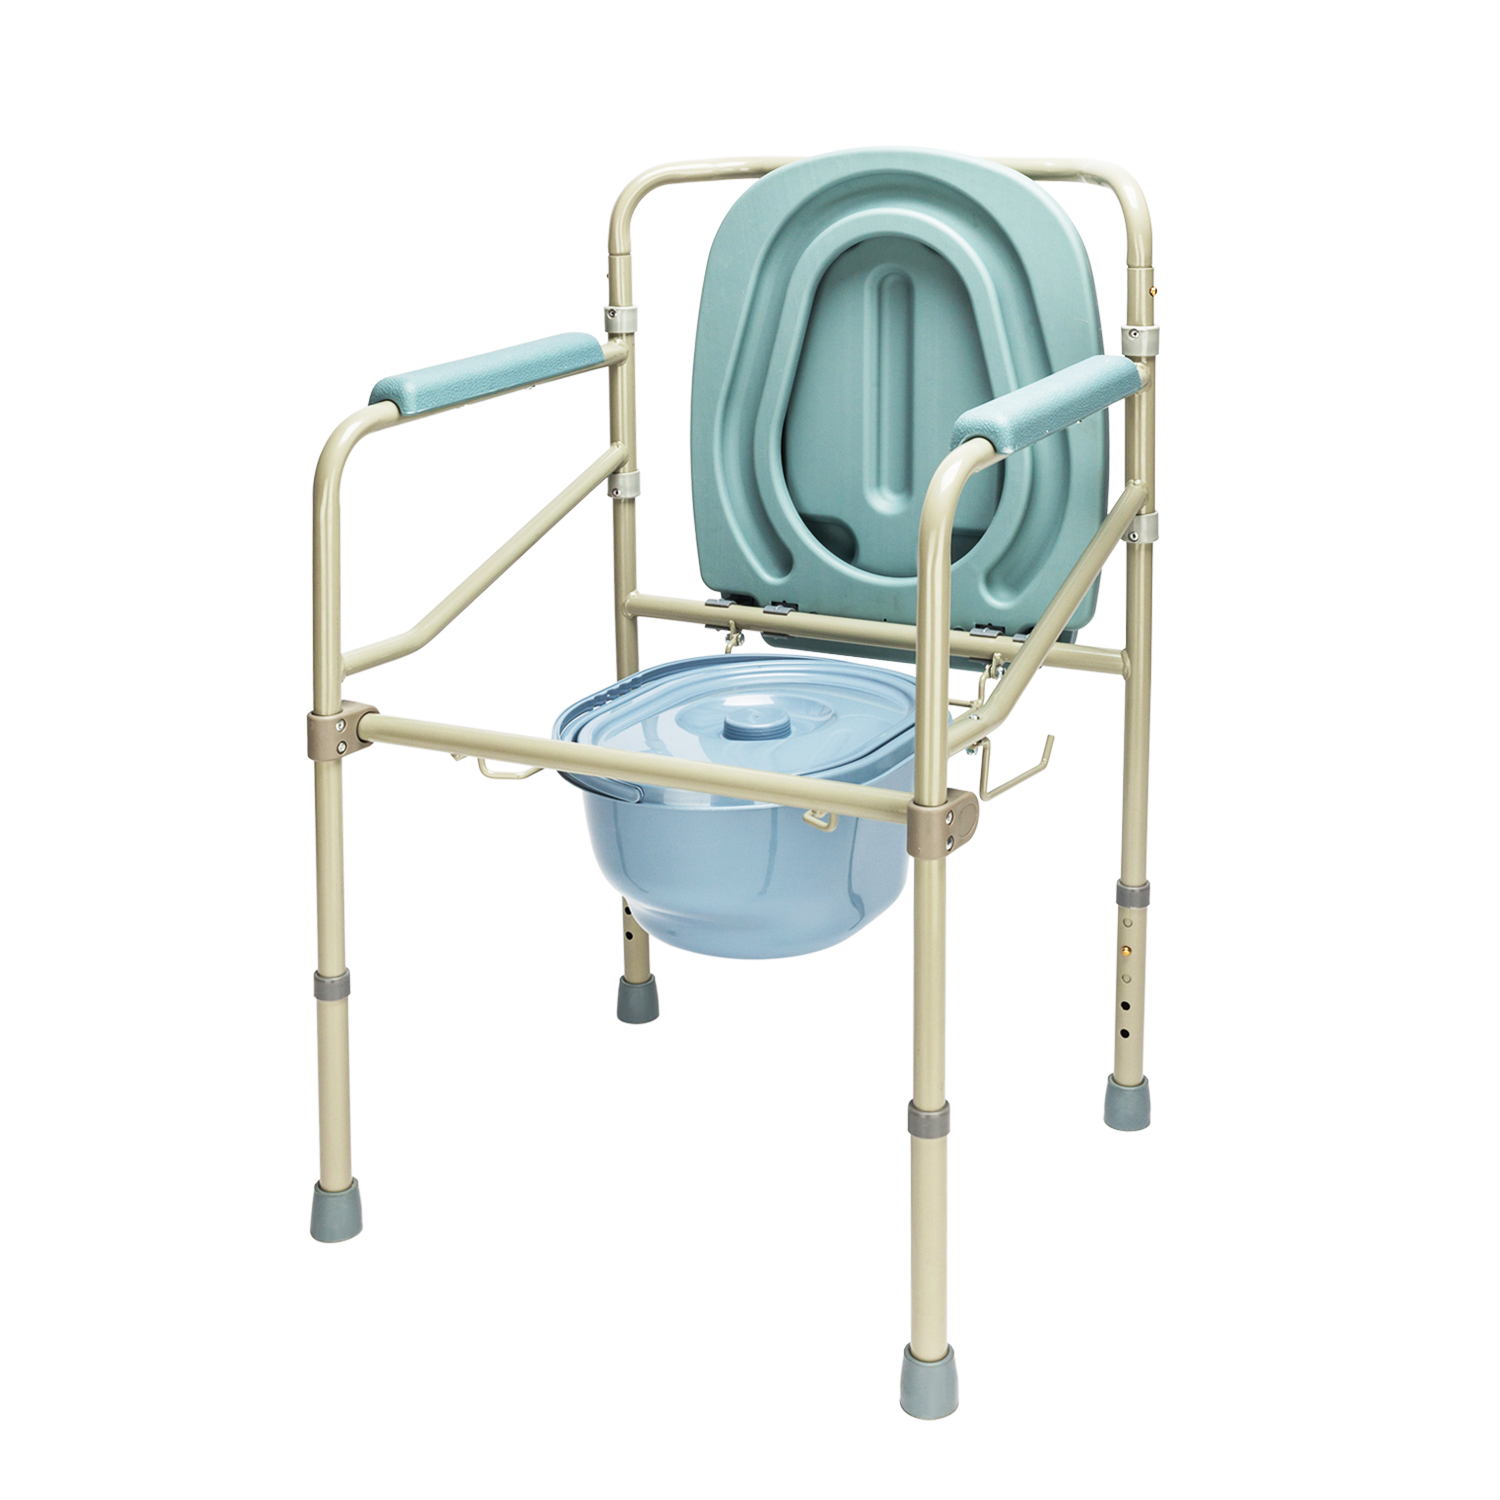 Zimtown Adult Potty Chair Toilet Seat Commode Bedside Steel ...